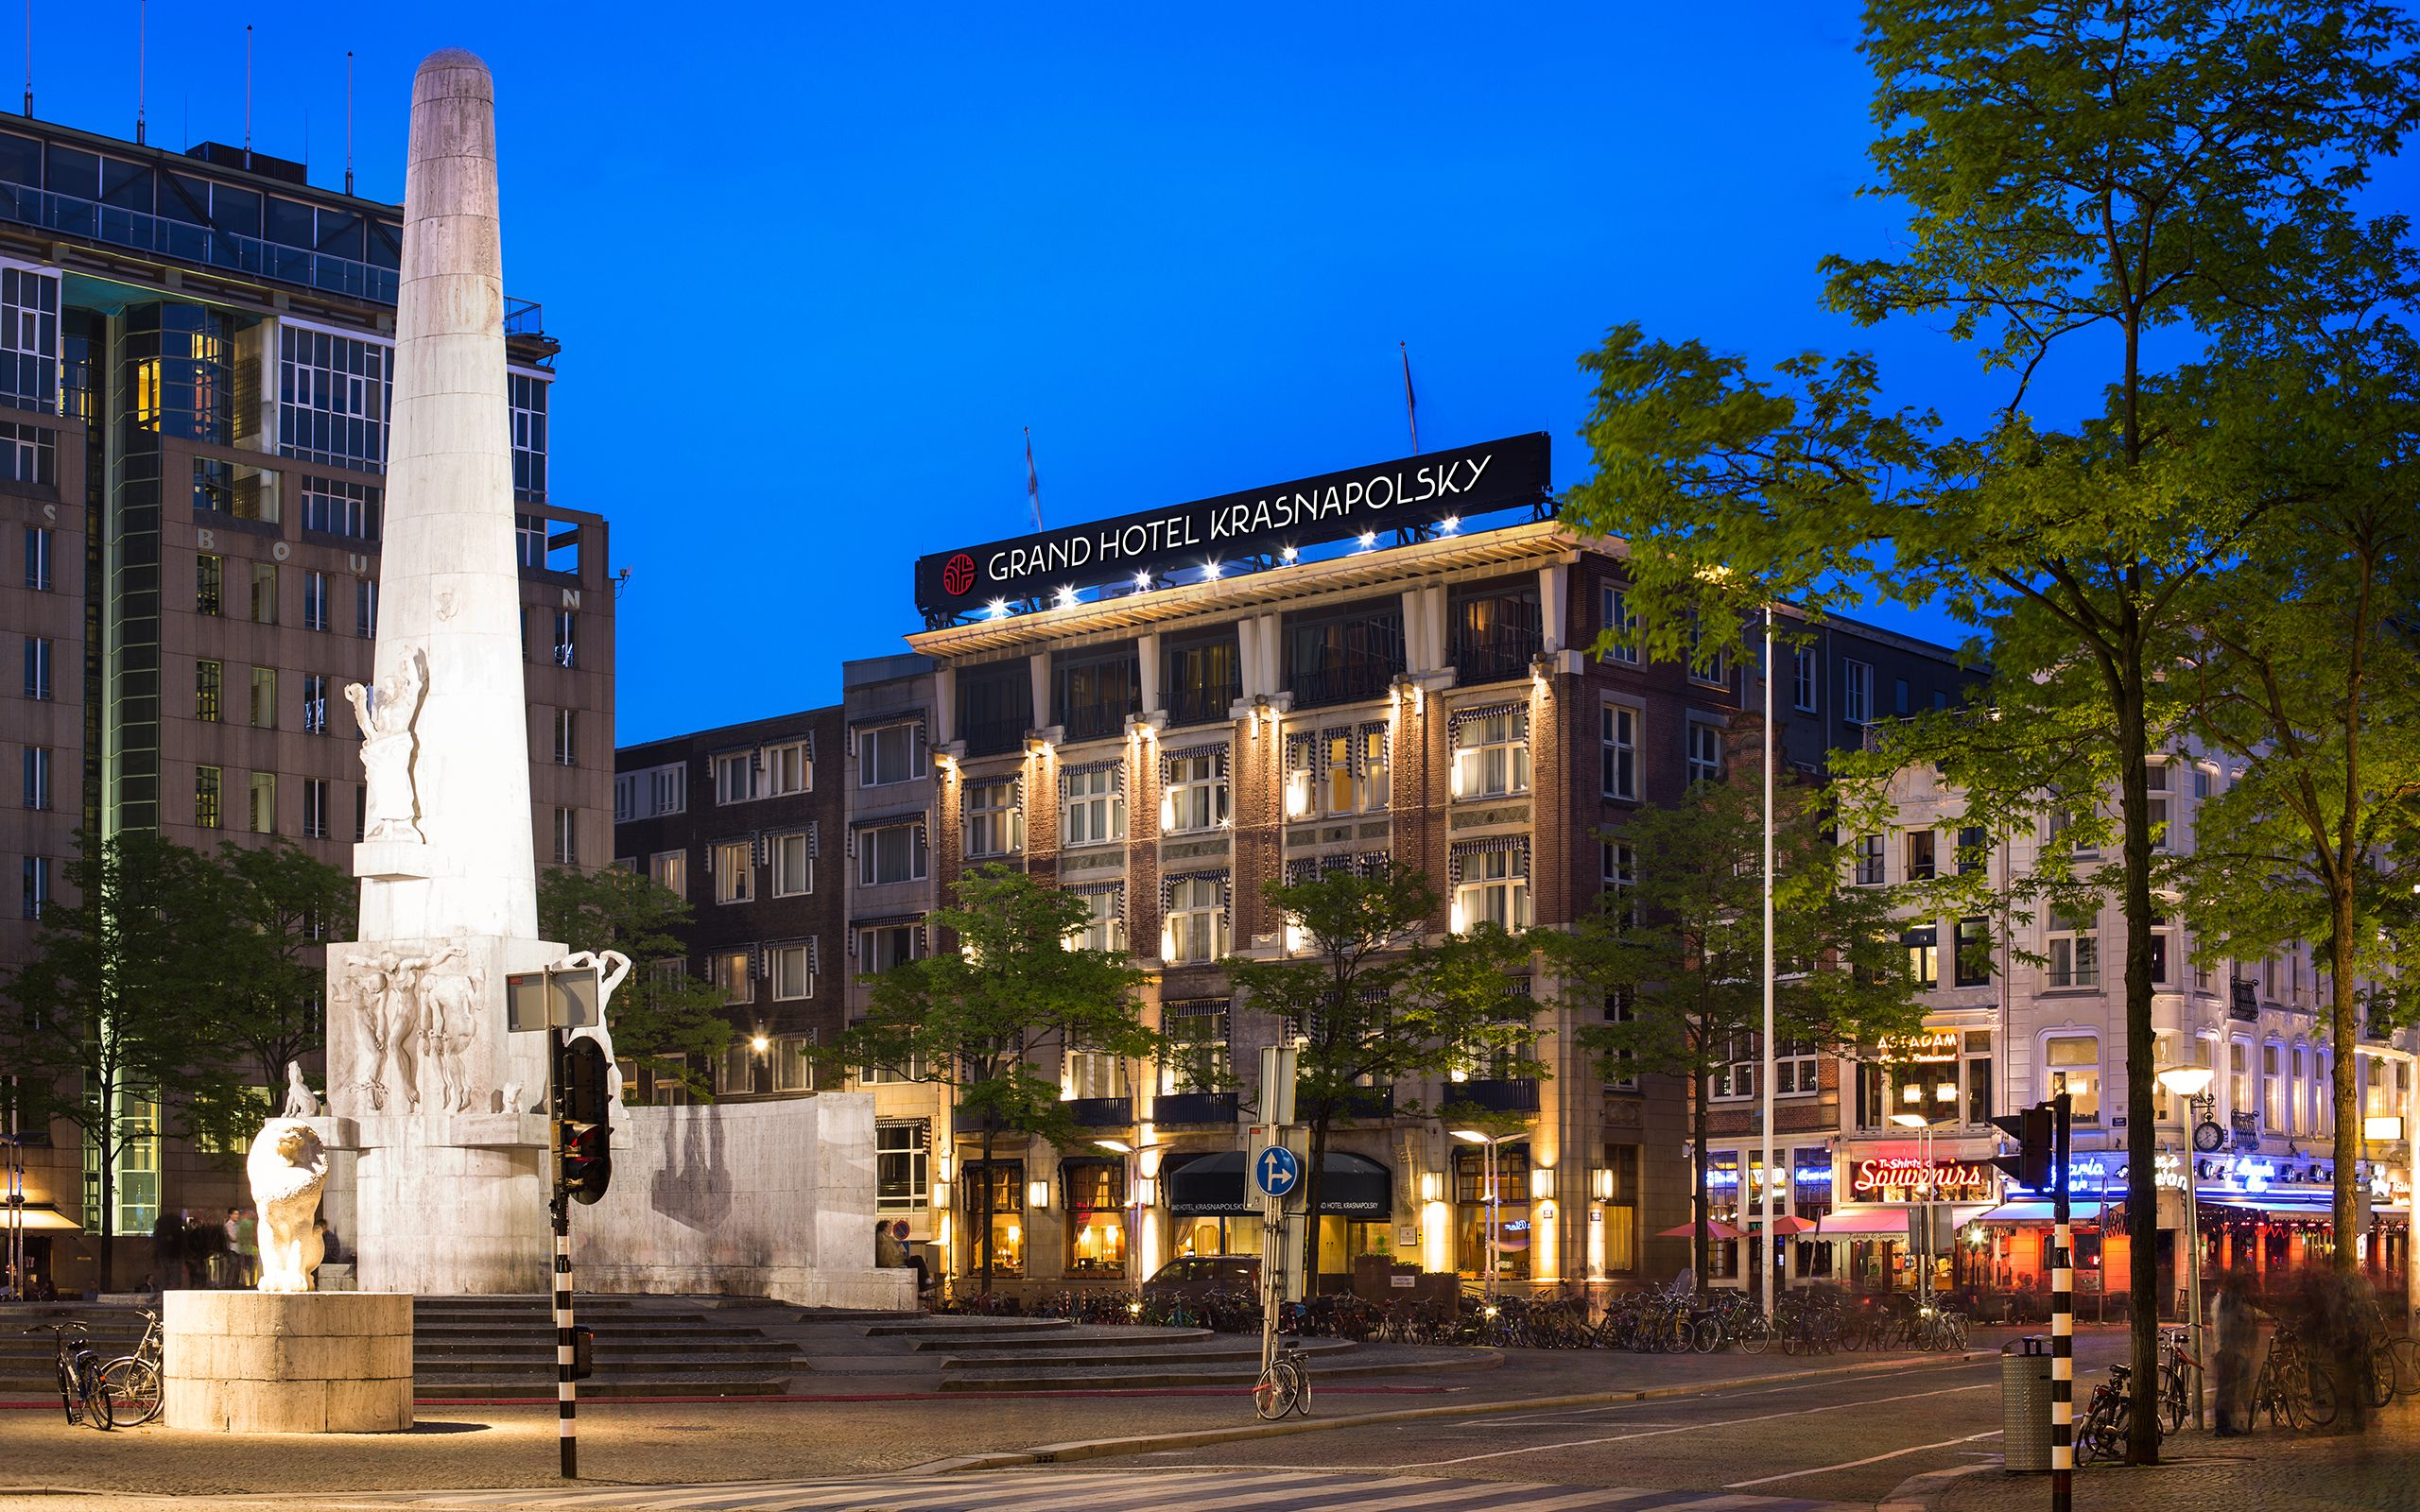 188364 nh%20collection%20grand%20hotel%20krasnapolsky 2f2946 original 1448442417